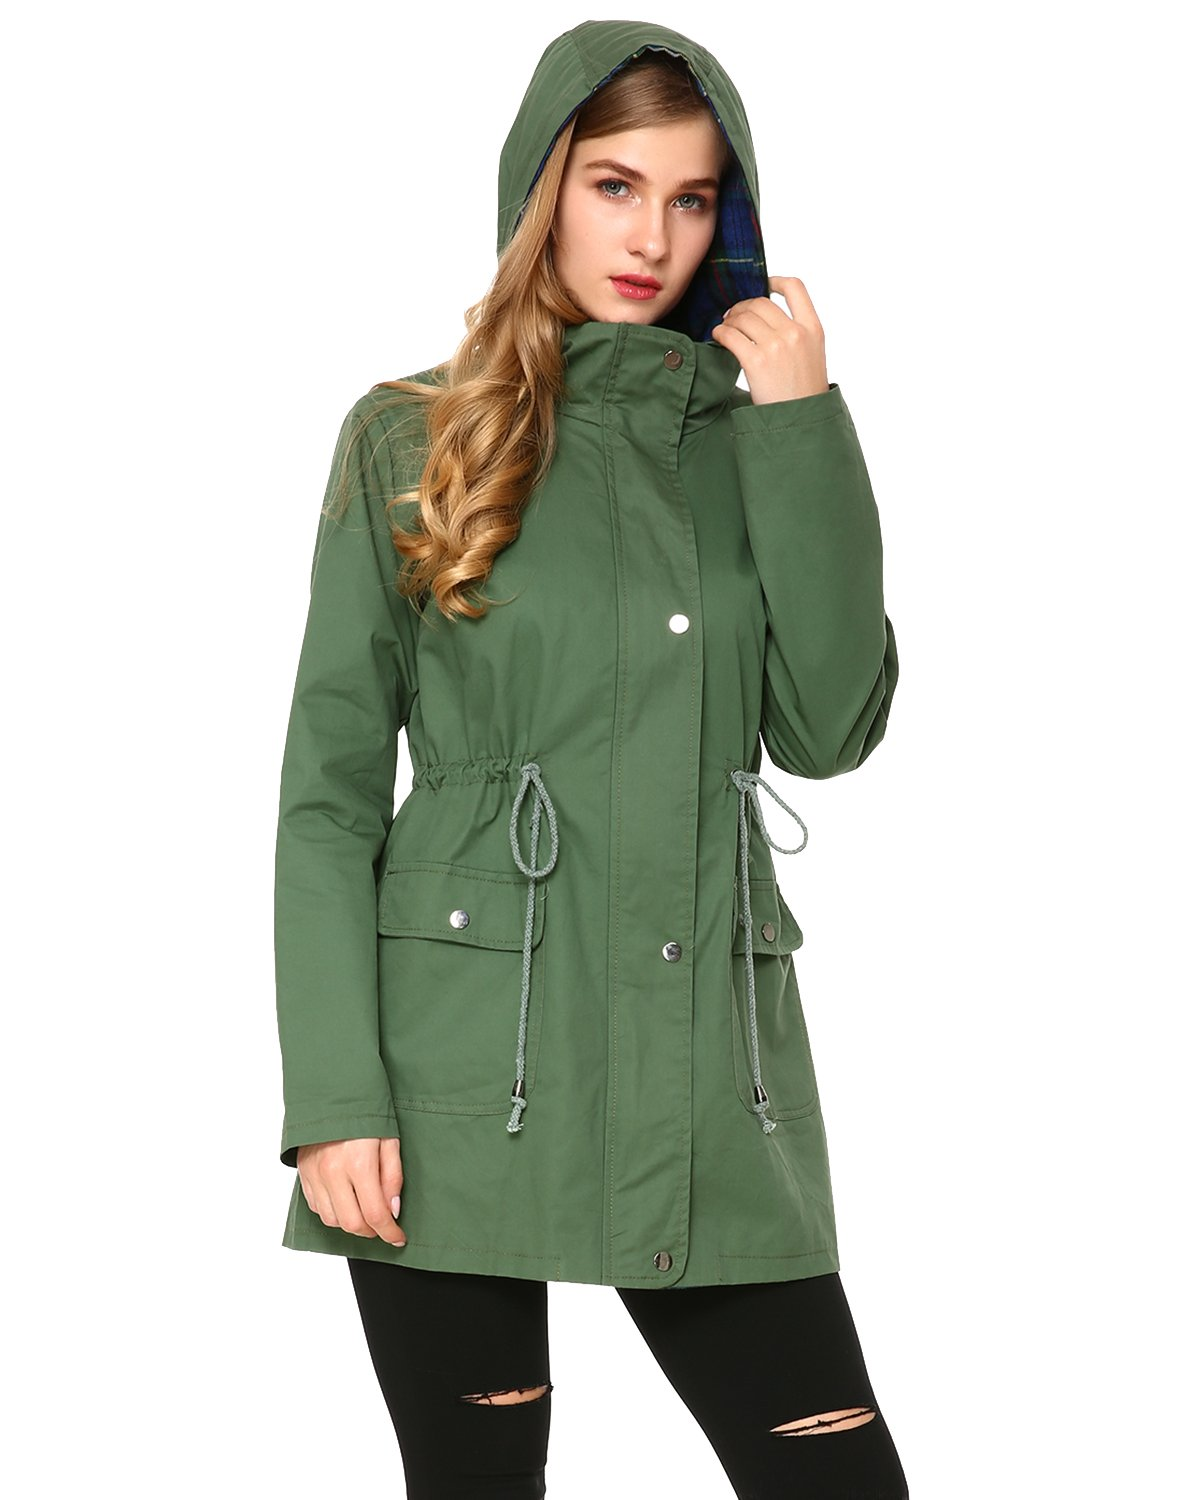 b95e0d1cbca Mixfeer Women s Multifunction Anorak Parka Hoodie Drawstring Jacket with  Pockets product image